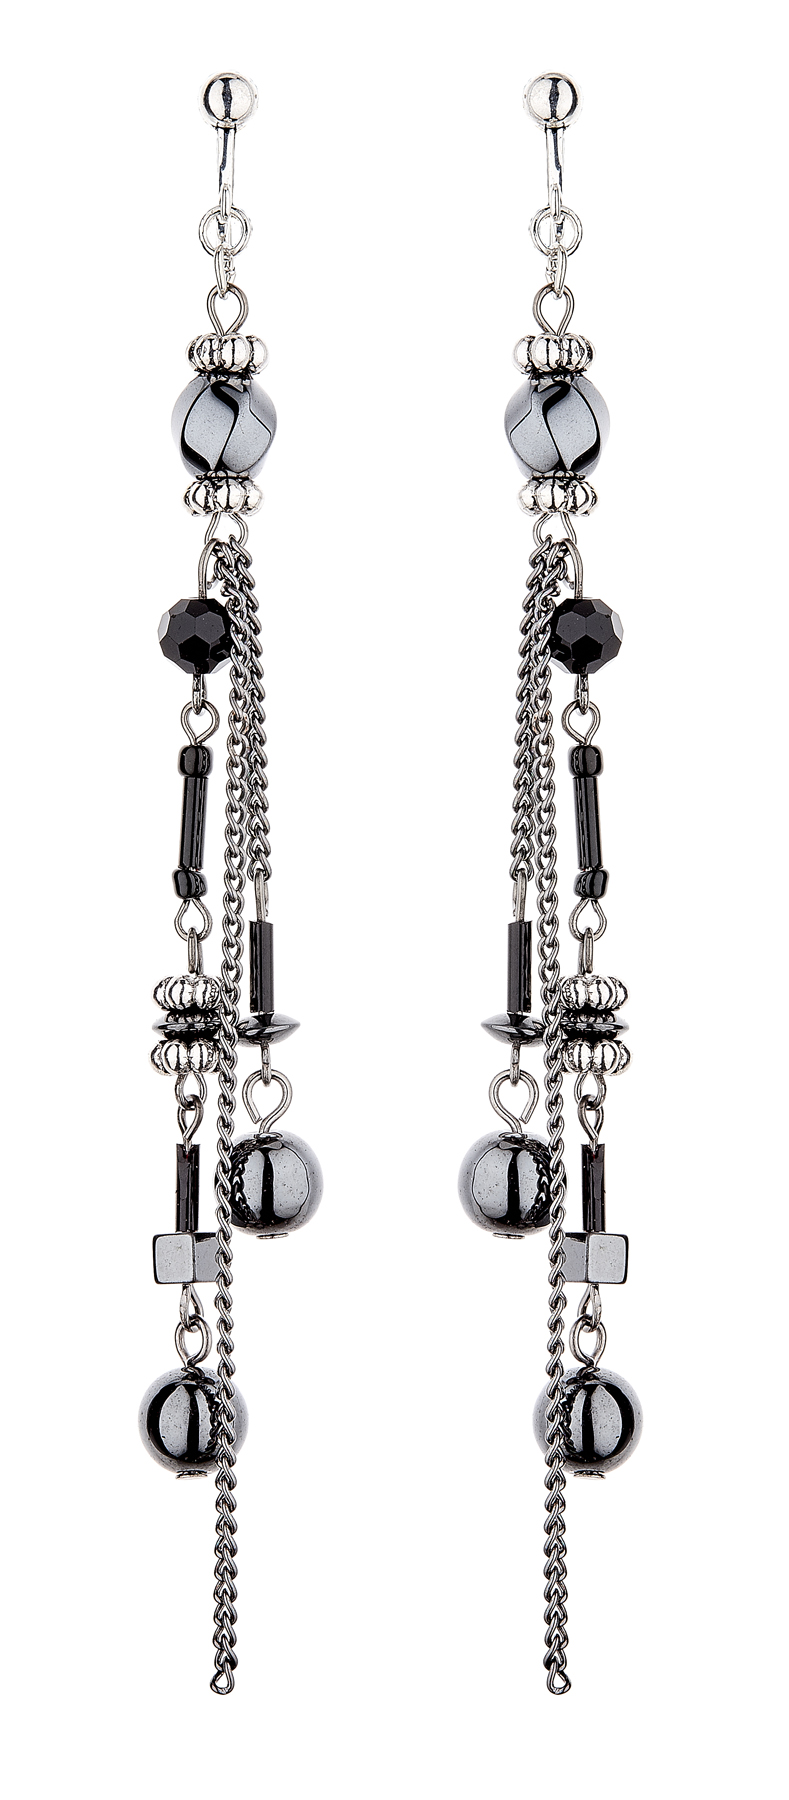 Clip On Earrings - Dakini - silver dangle earring with long black and grey chains